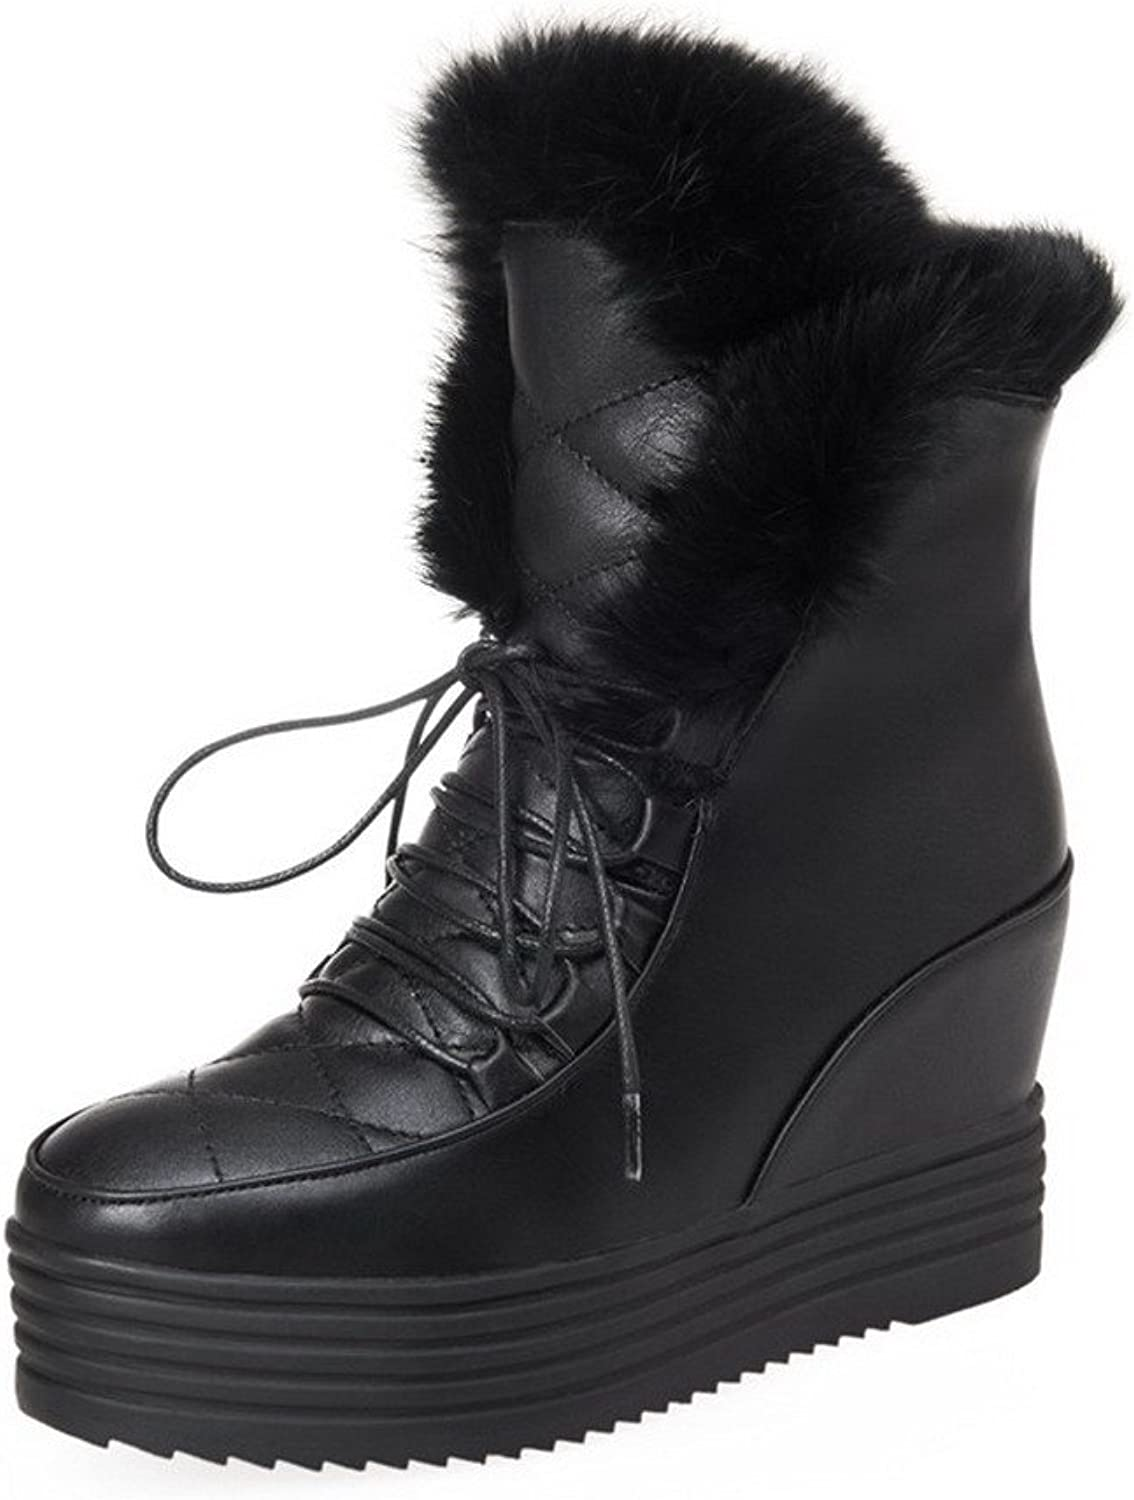 WeenFashion Women's Solid Pu High-Heels Round Closed Toe Lace up Boots